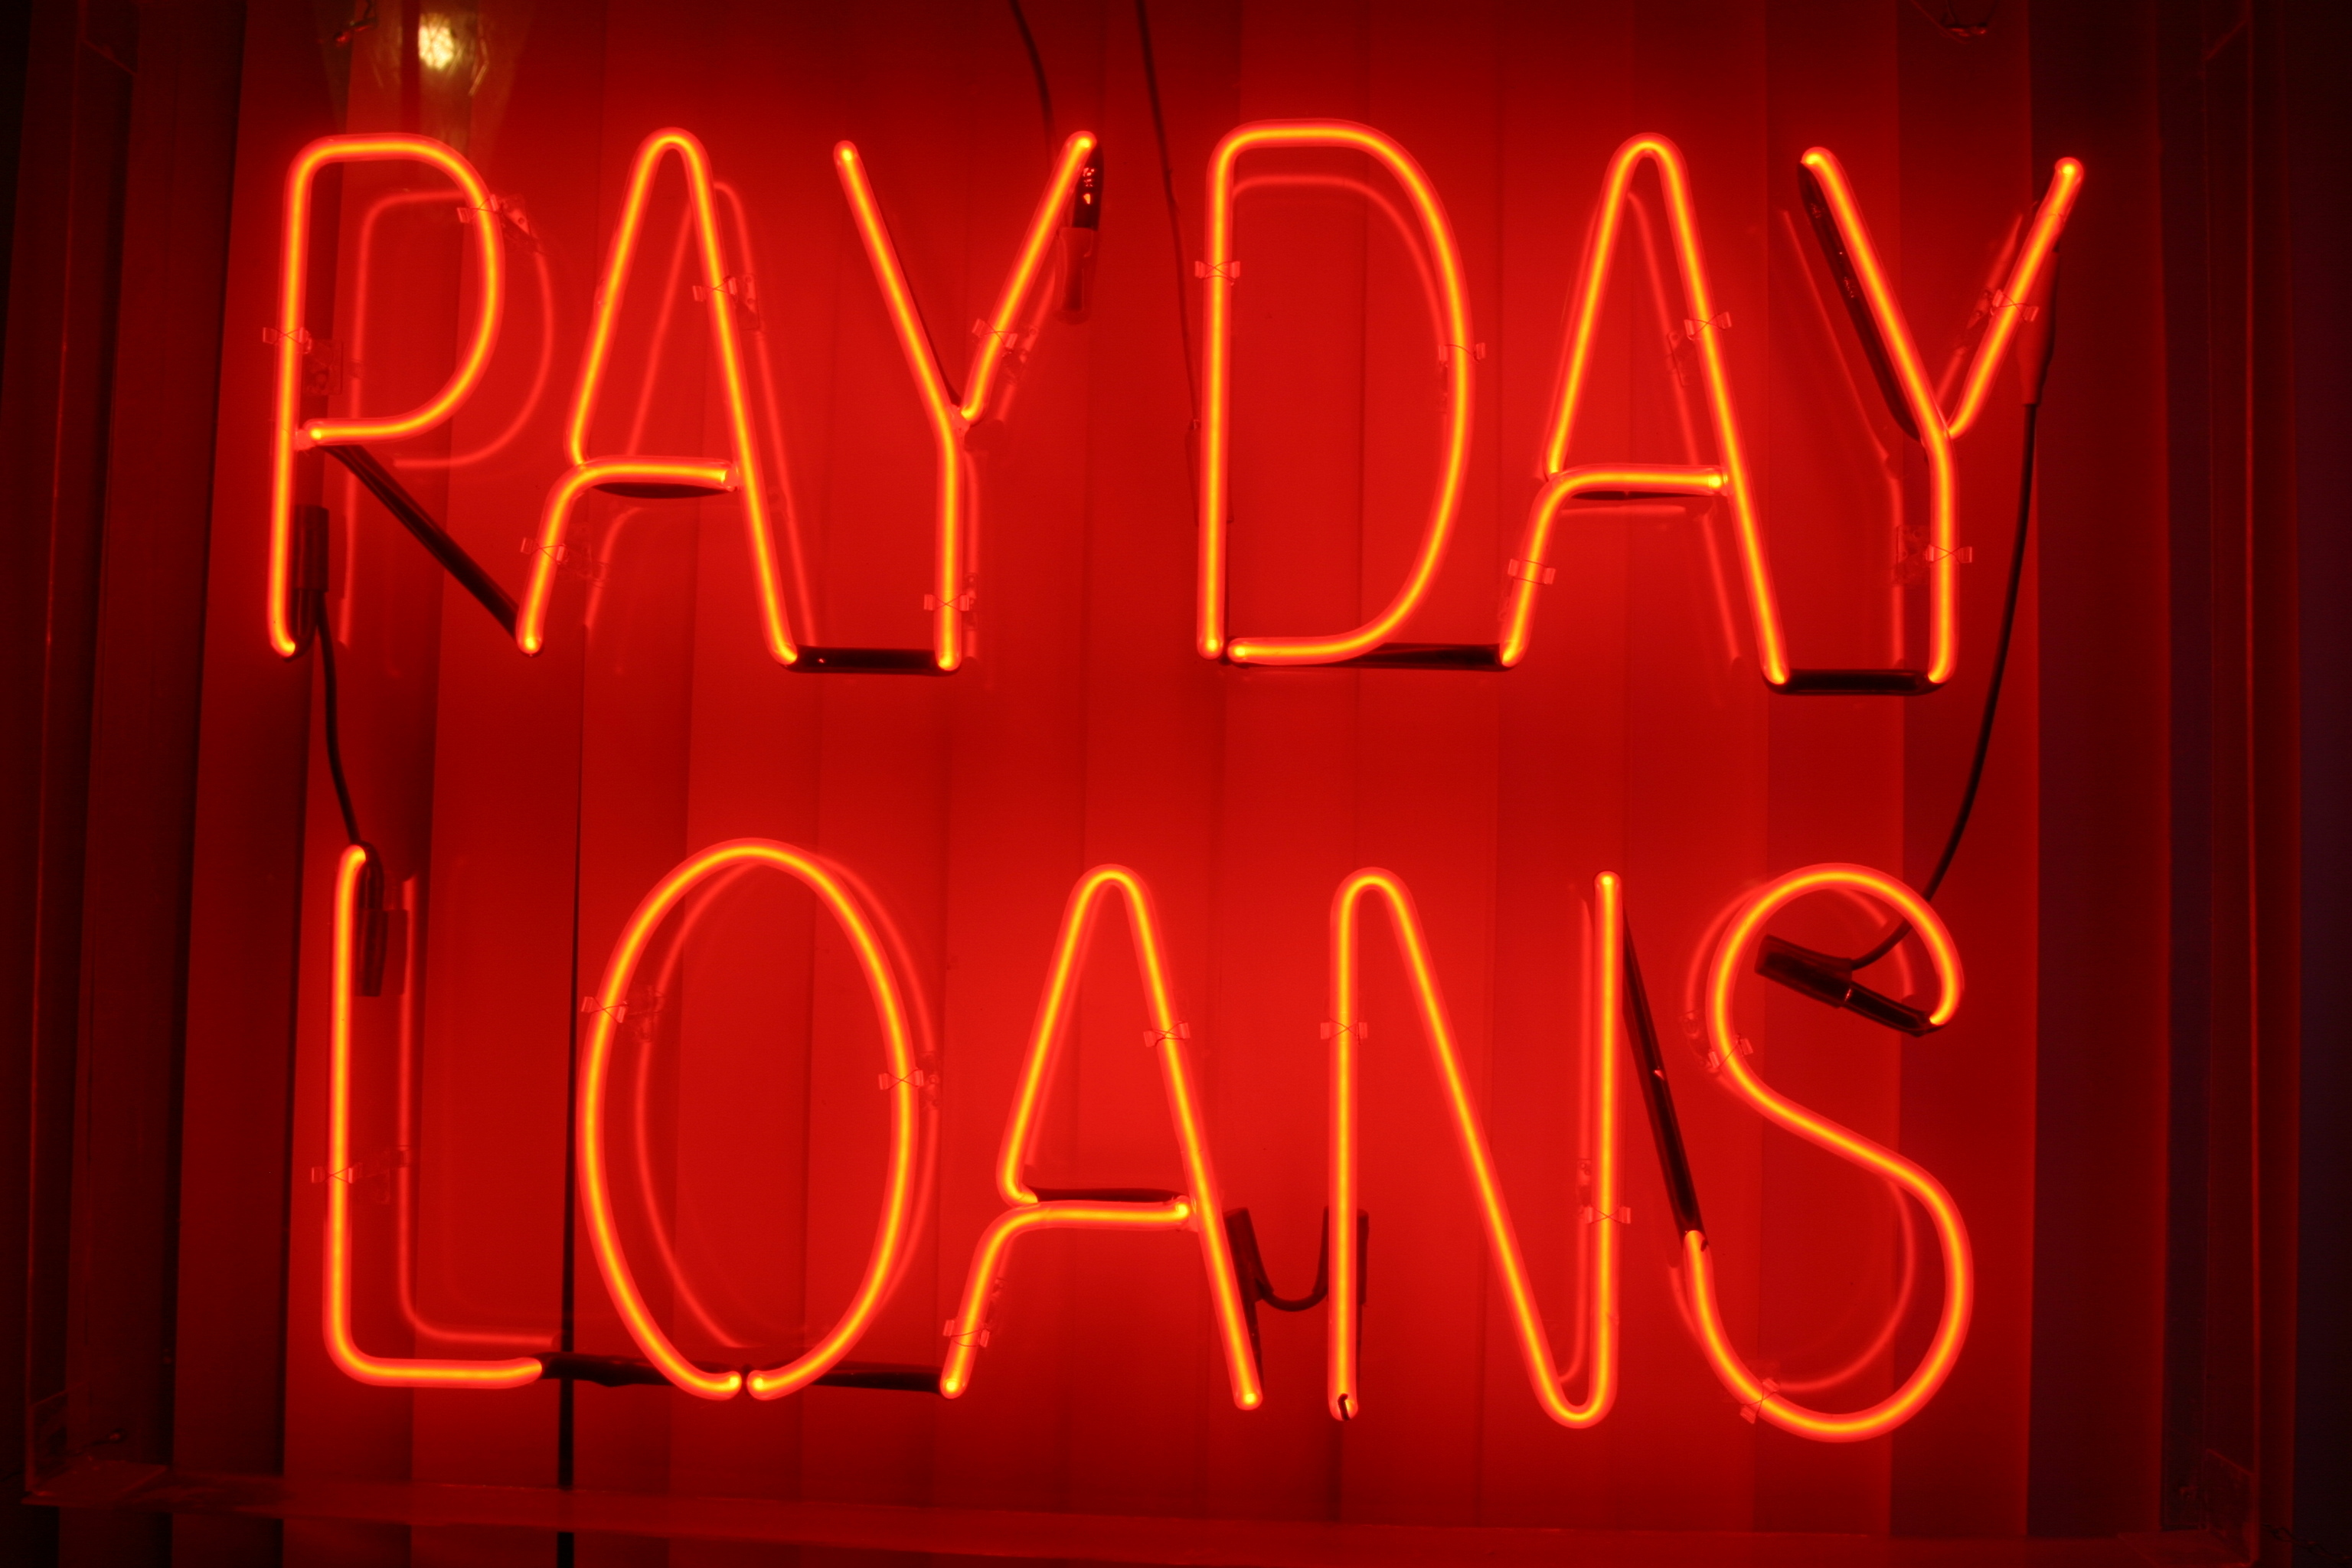 Payday loans riverside ca image 1